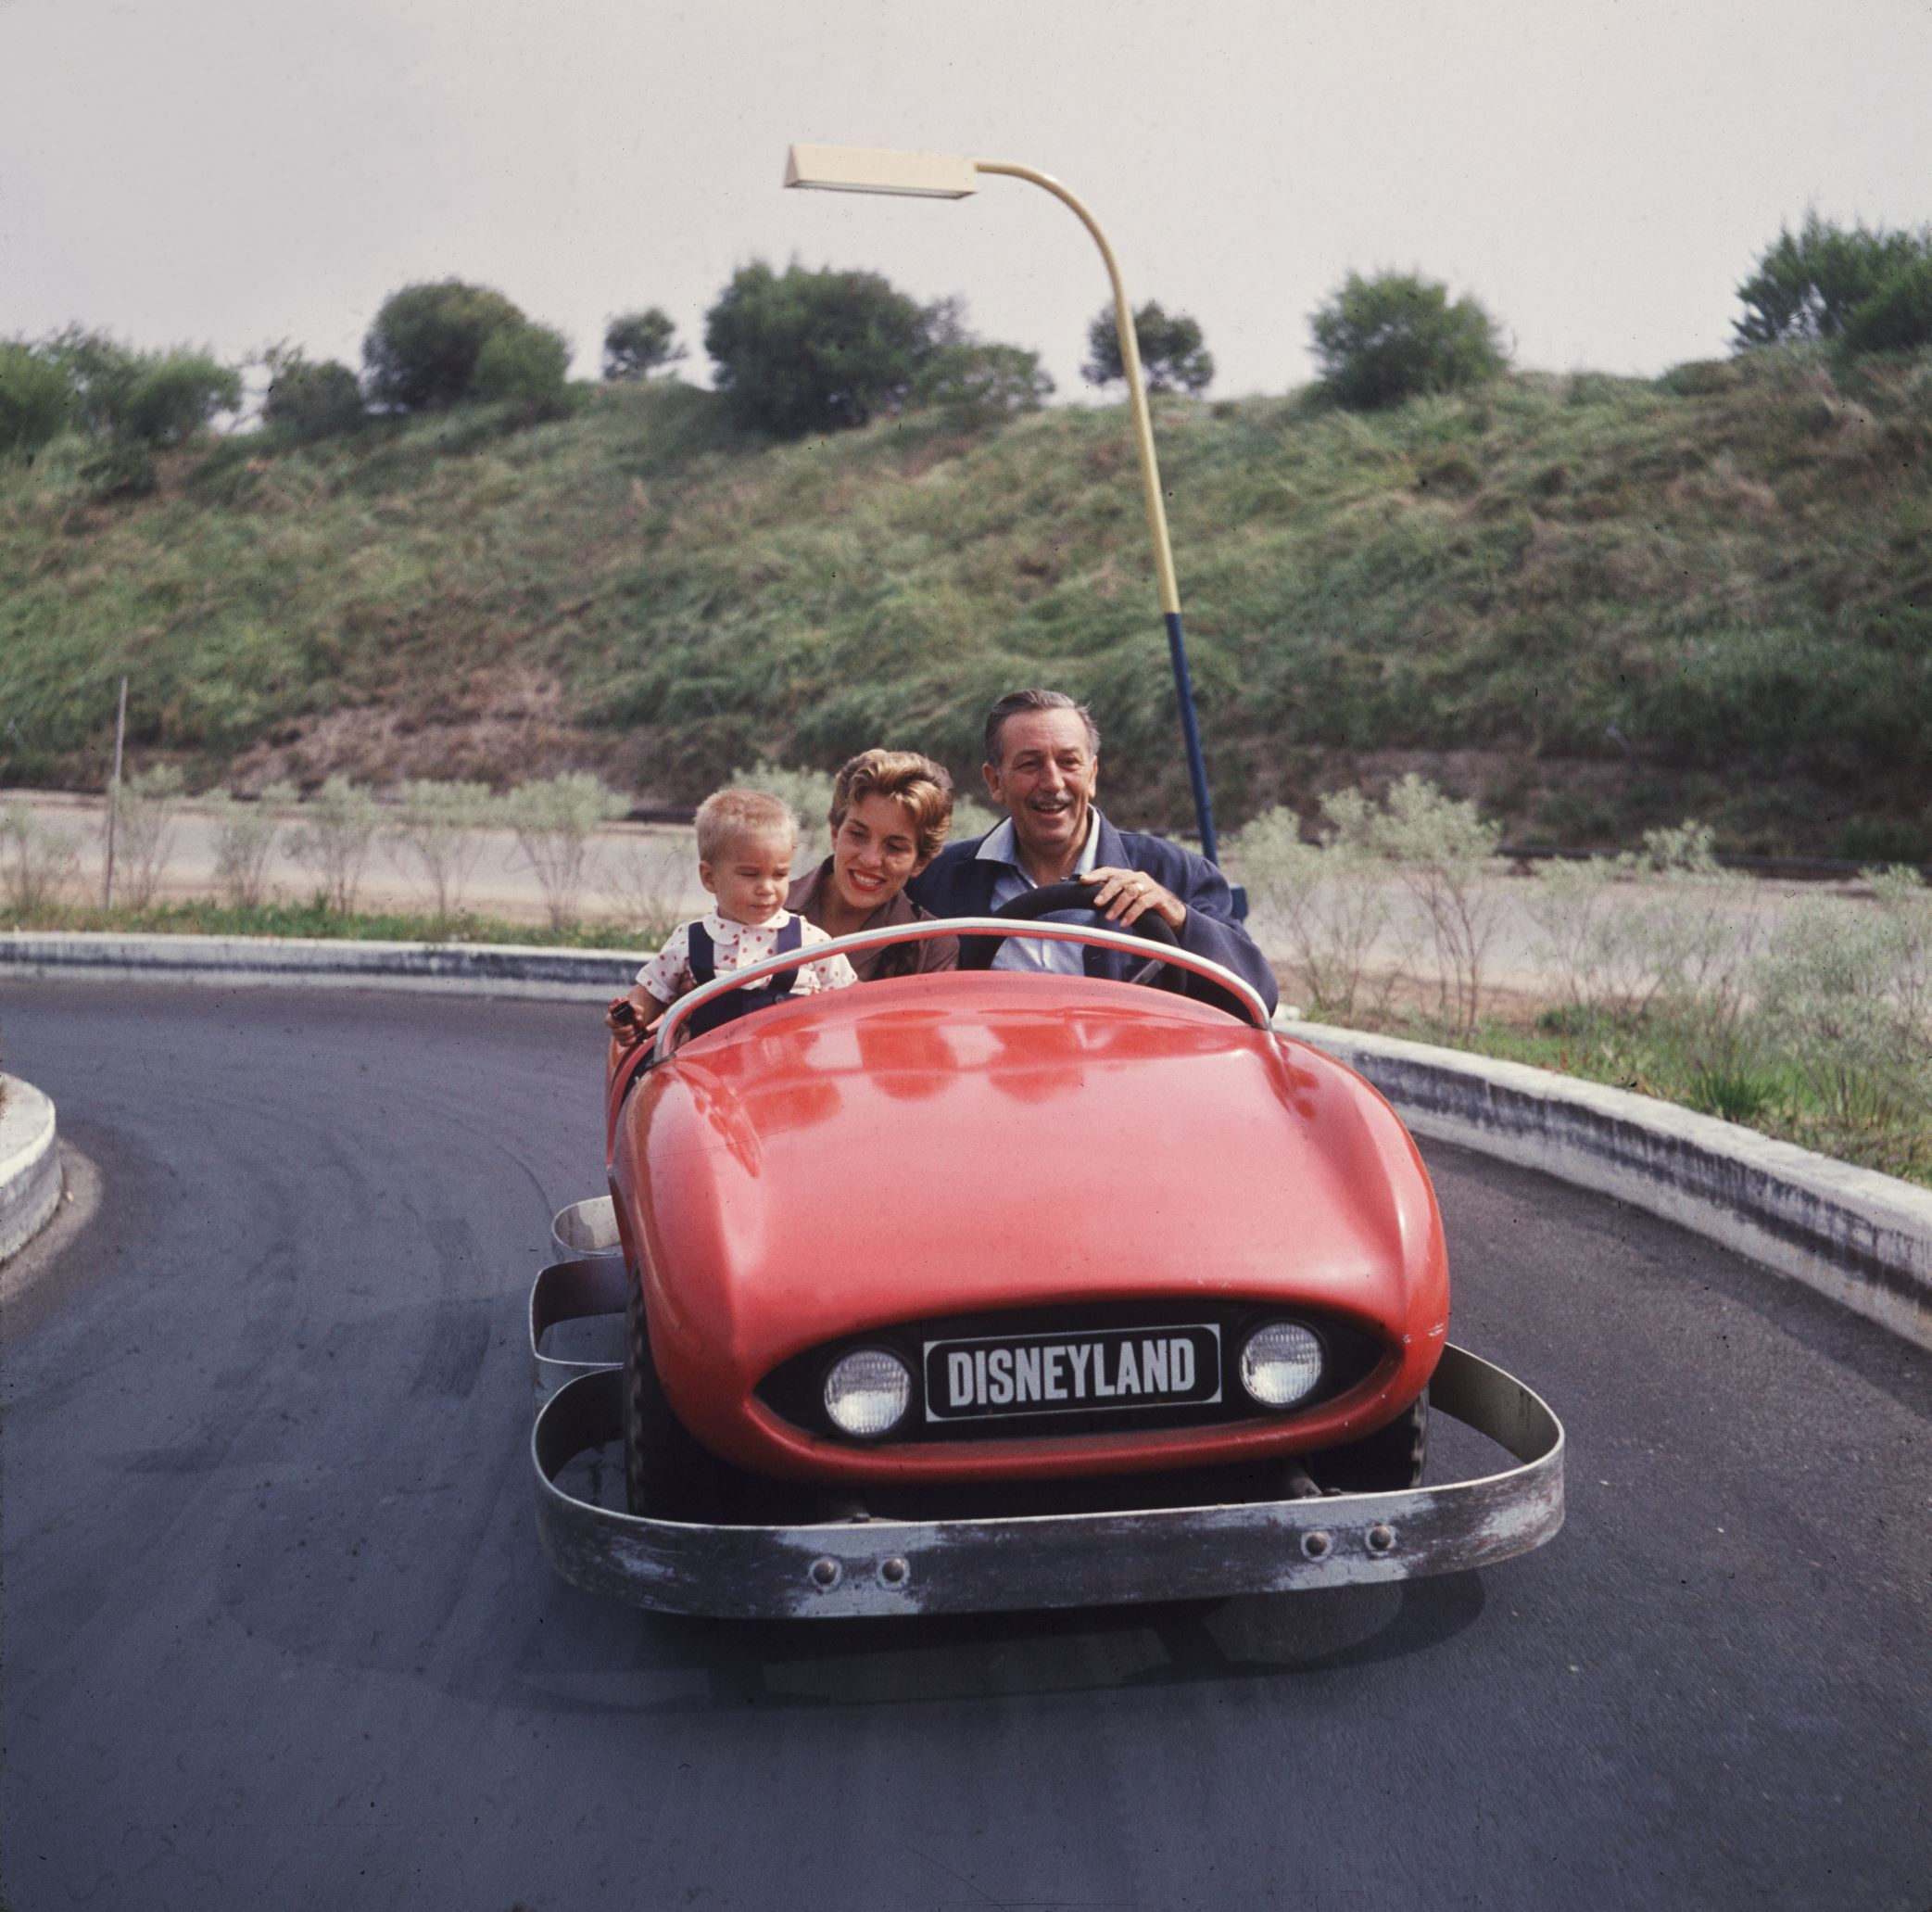 Slide 19 of 33: EXCLUSIVE Walt Disney (1901 - 1966) drives a red bumper car with his daughter and grandson as passengers at Disneyland theme park, Anaheim, California. (Photo by Gene Lester/Getty Images)